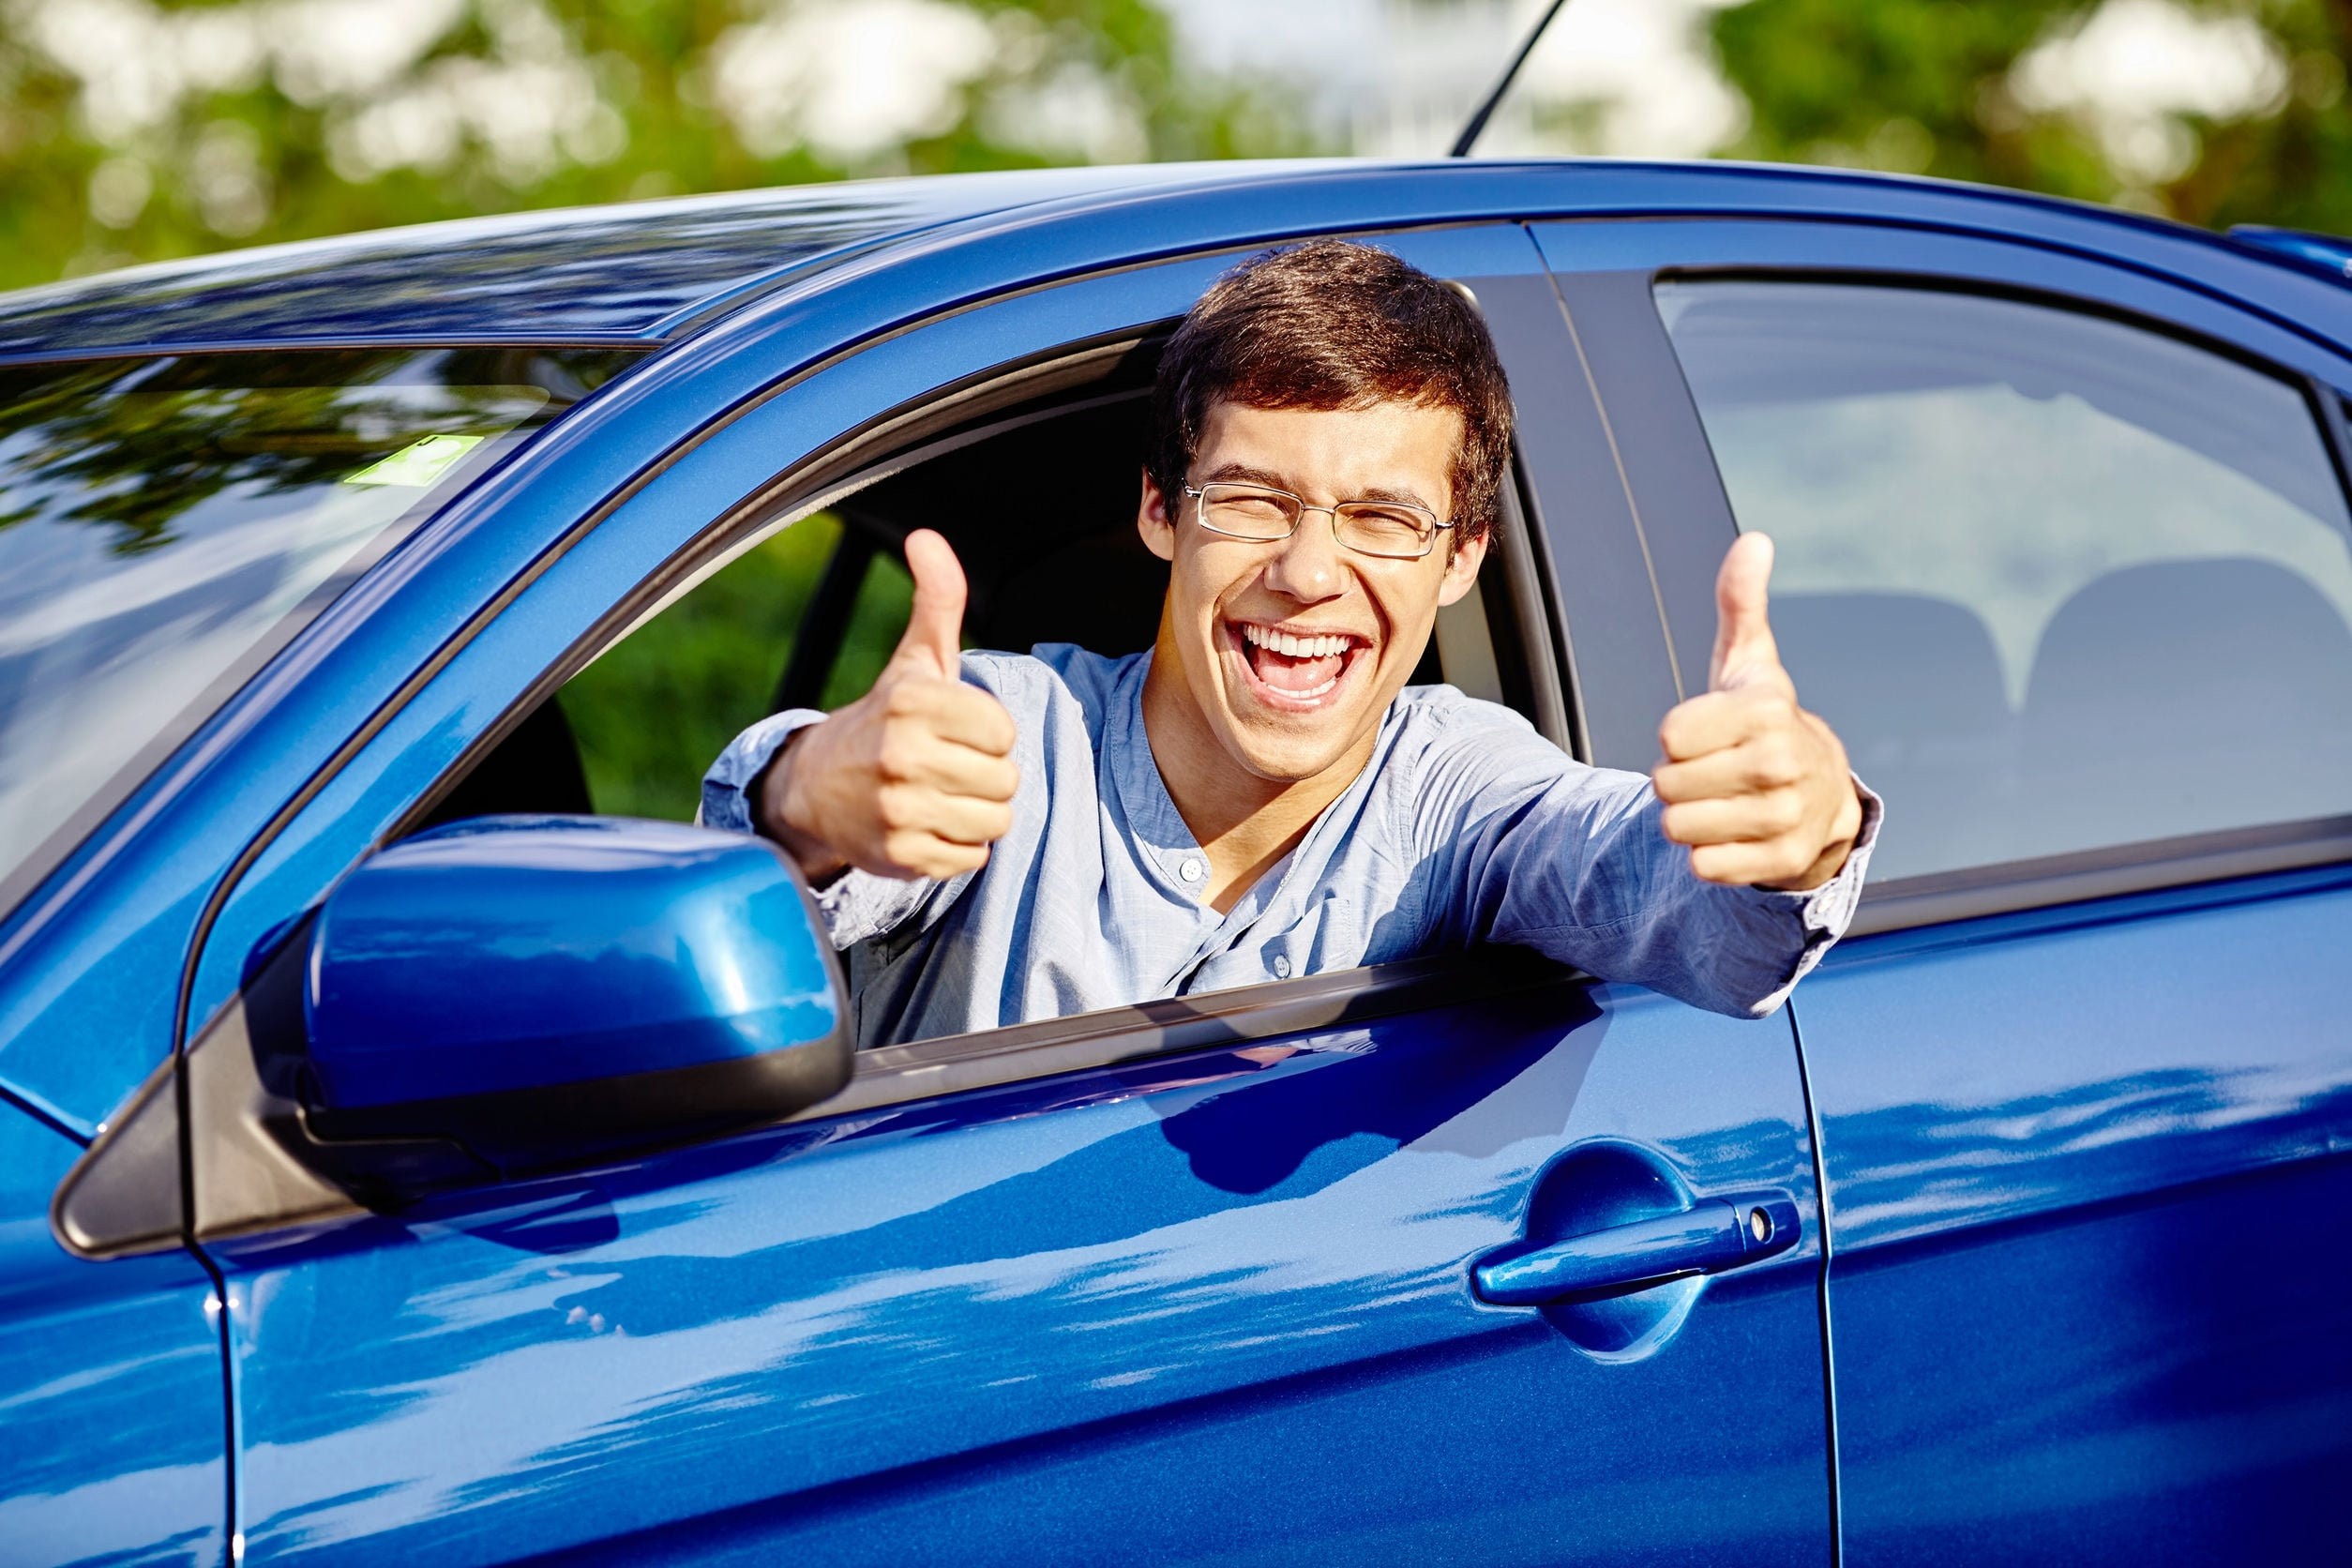 South Florida Teen Car Accident Attorneys